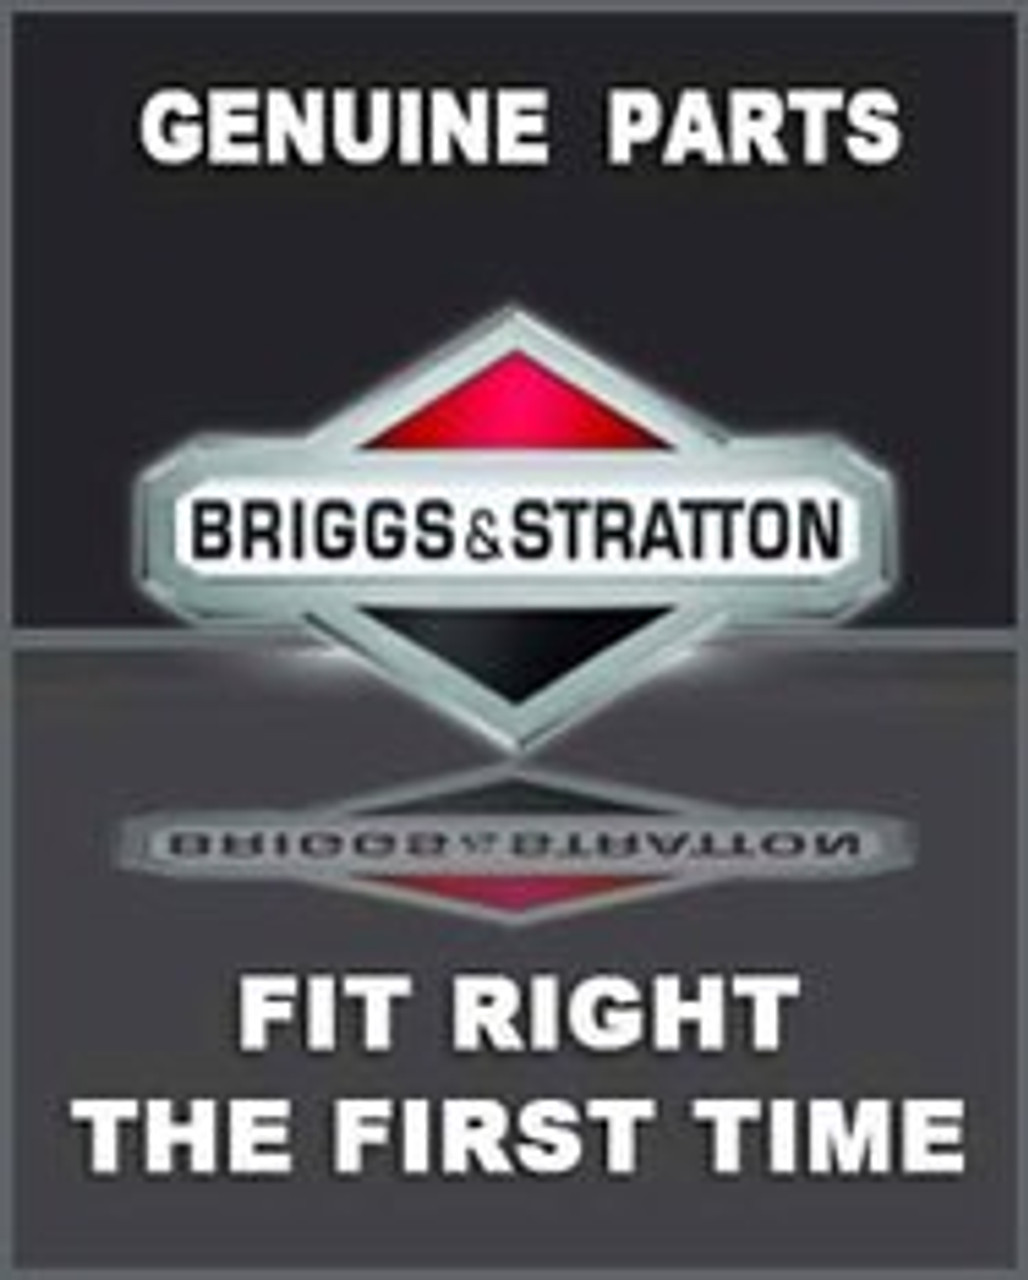 BRIGGS & STRATTON for part number 703335 - BOLT, 5/16-18